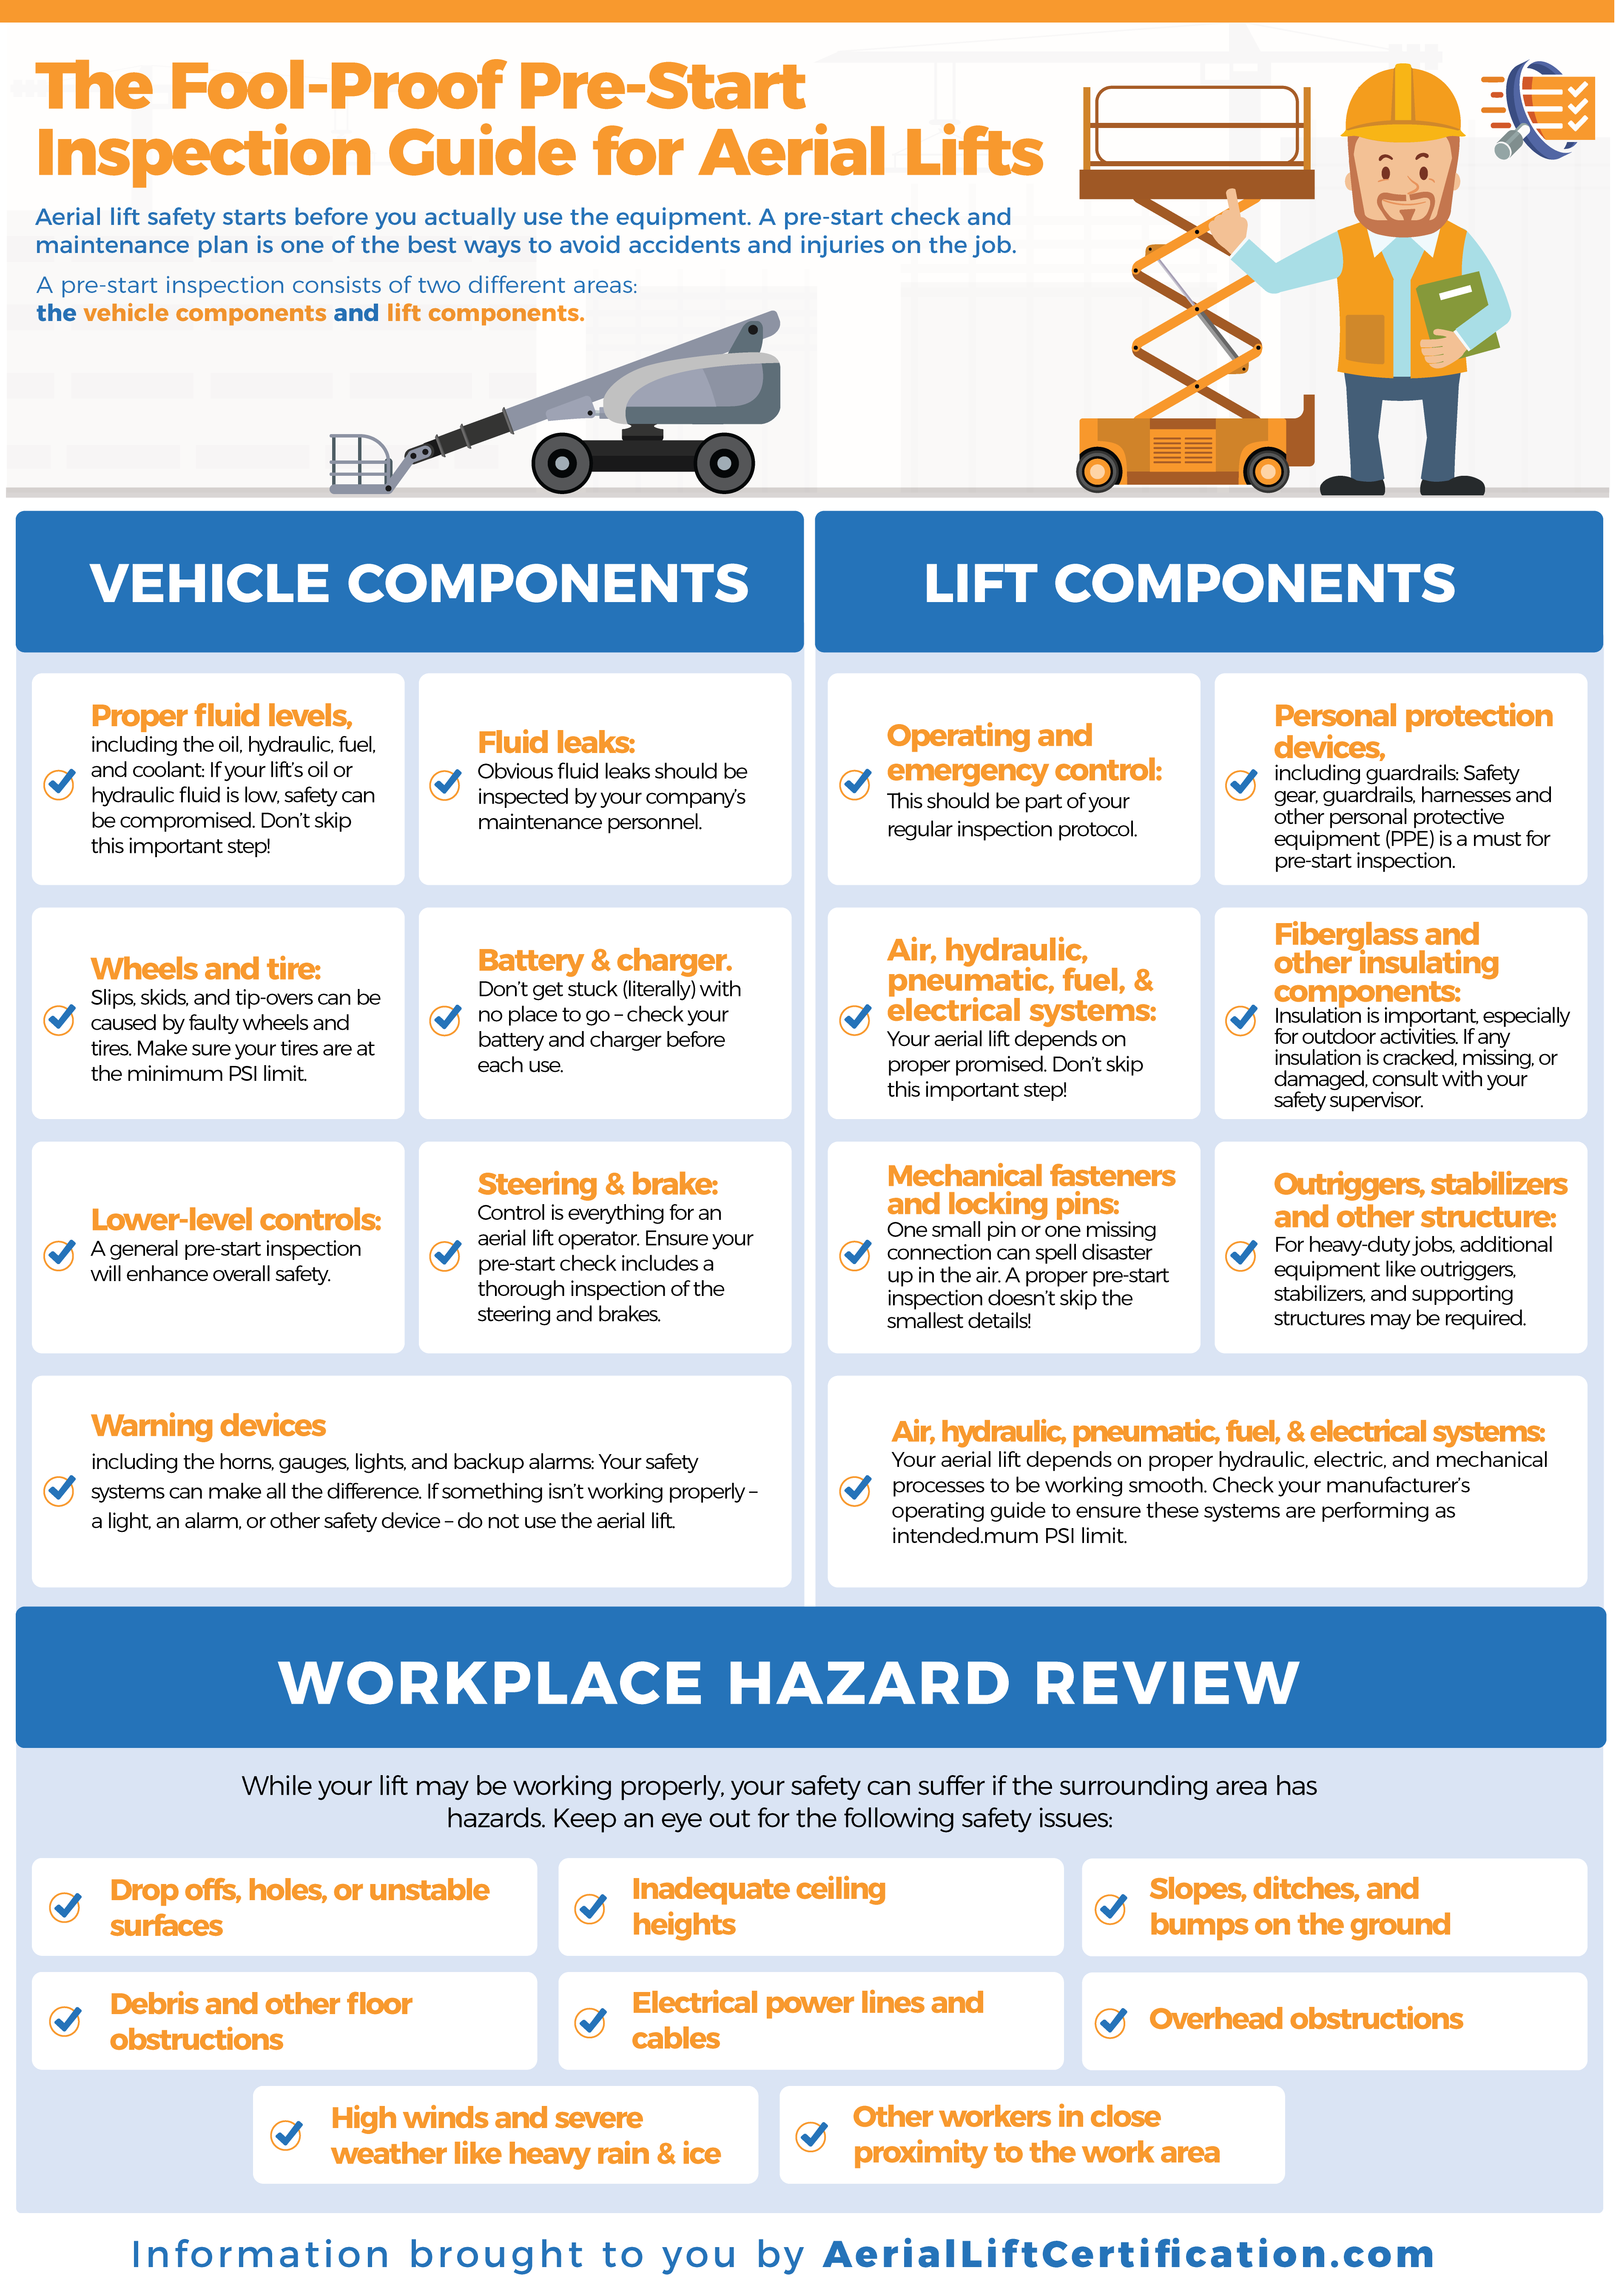 Aerial Lift Safety Checklist by Aerial Safety Certification - DICA